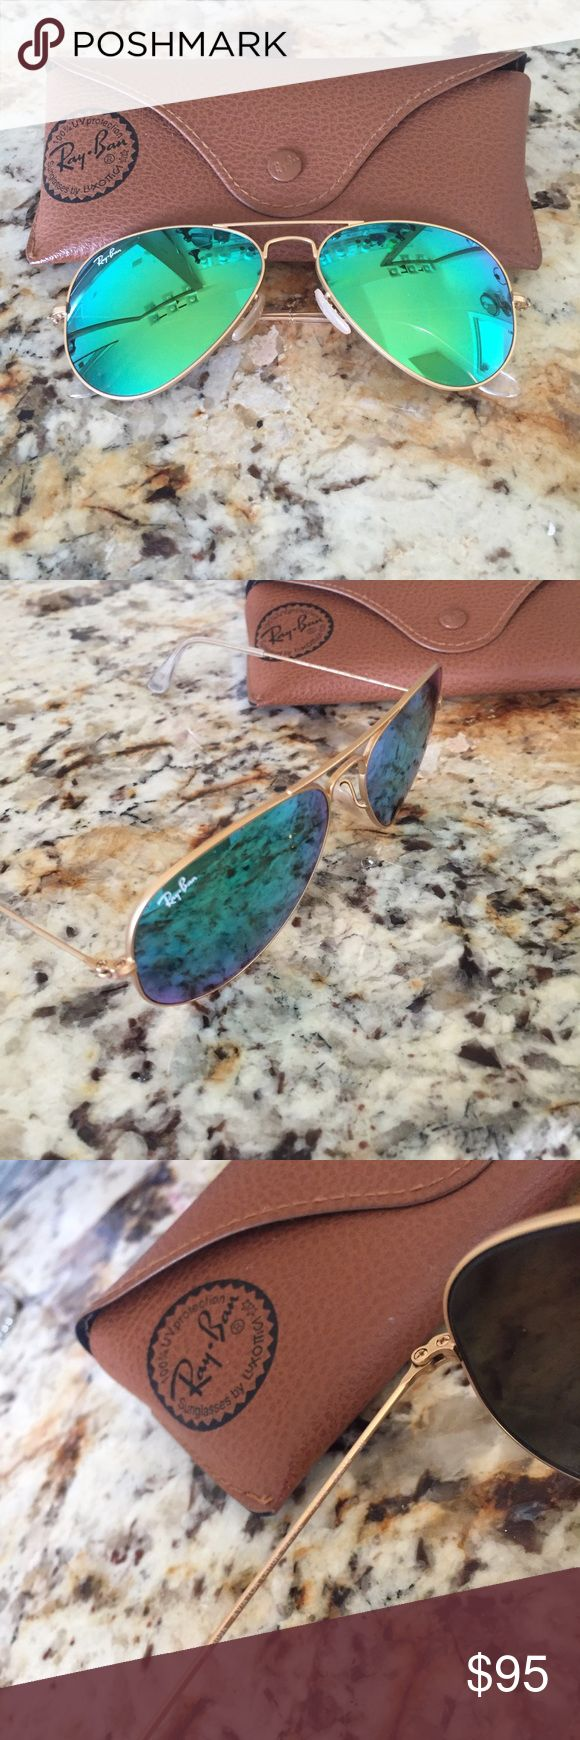 Ray Ban Aviator Sunglasses - Green Mirror Lens  Ray Ban Sunglasses - Green Mirrored Aviator Lens with Gold Frame. Case included. Only worn once! Ray-Ban Accessories Sunglasses